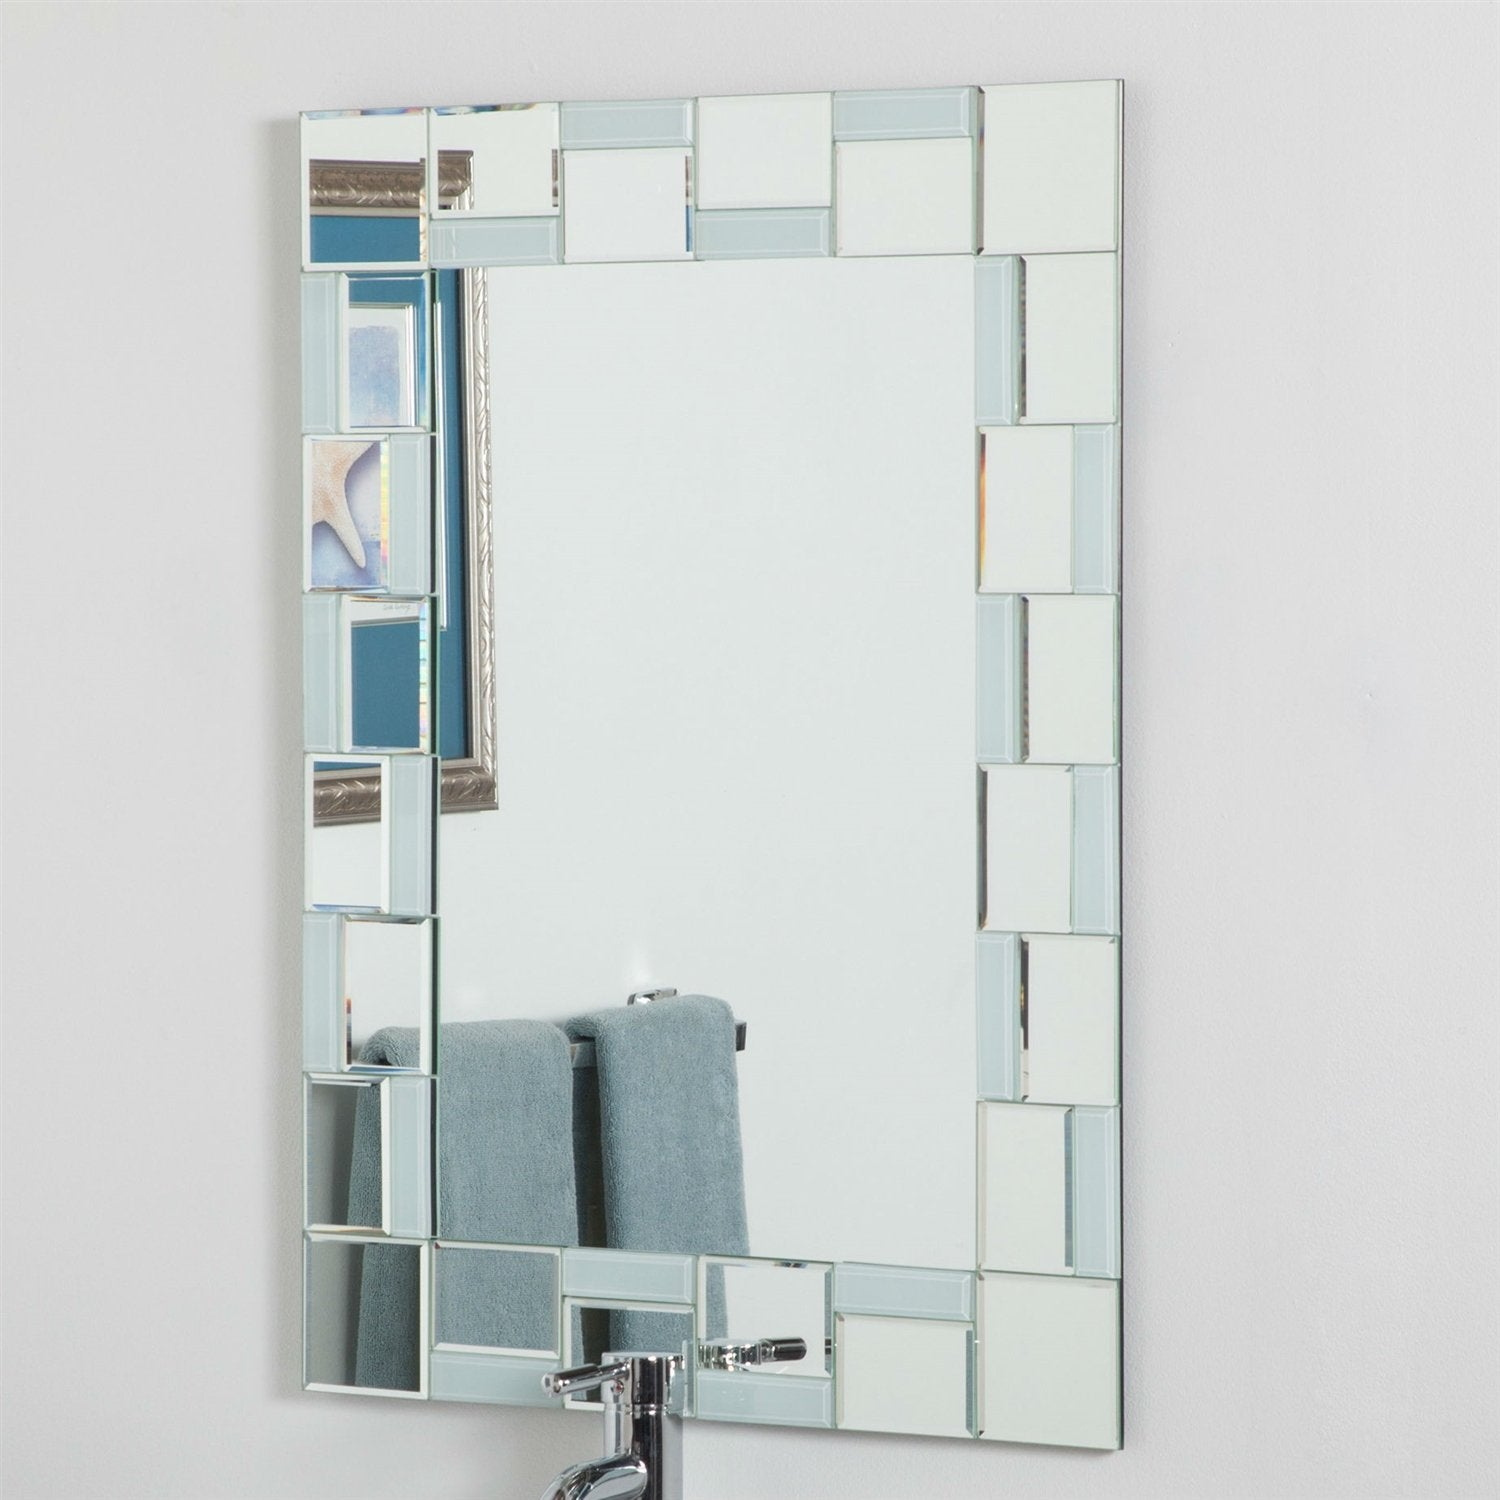 Contemporary 31.5 x 23.6 inch Rectangle Bathroom Mirror with Edging